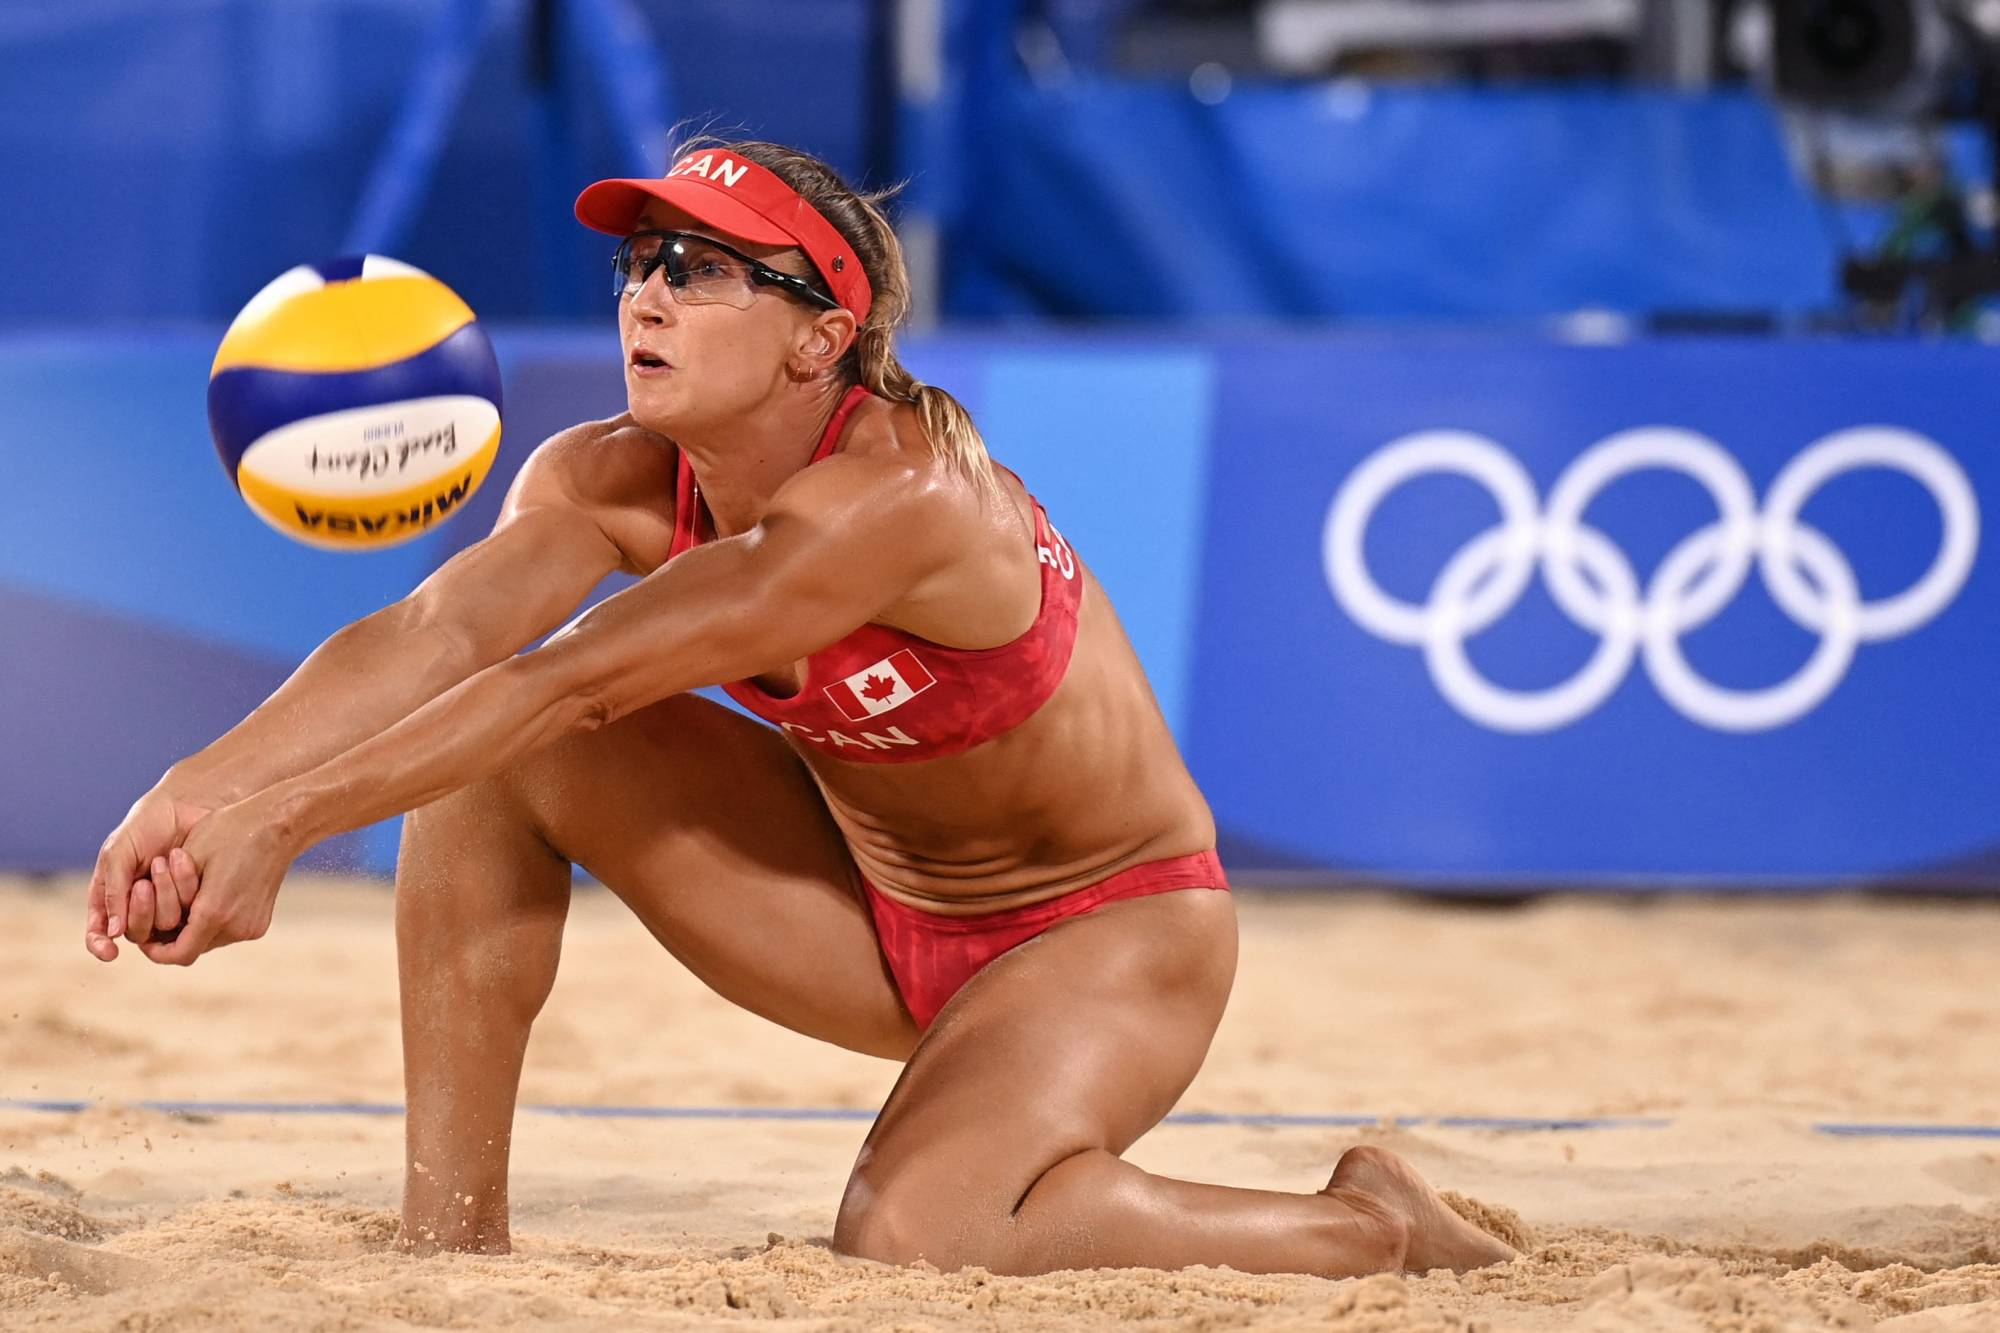 Canada's Heather Bansley in action during her team's match in women's beach volleyball quarter-final with Latvia | AFP-JIJI